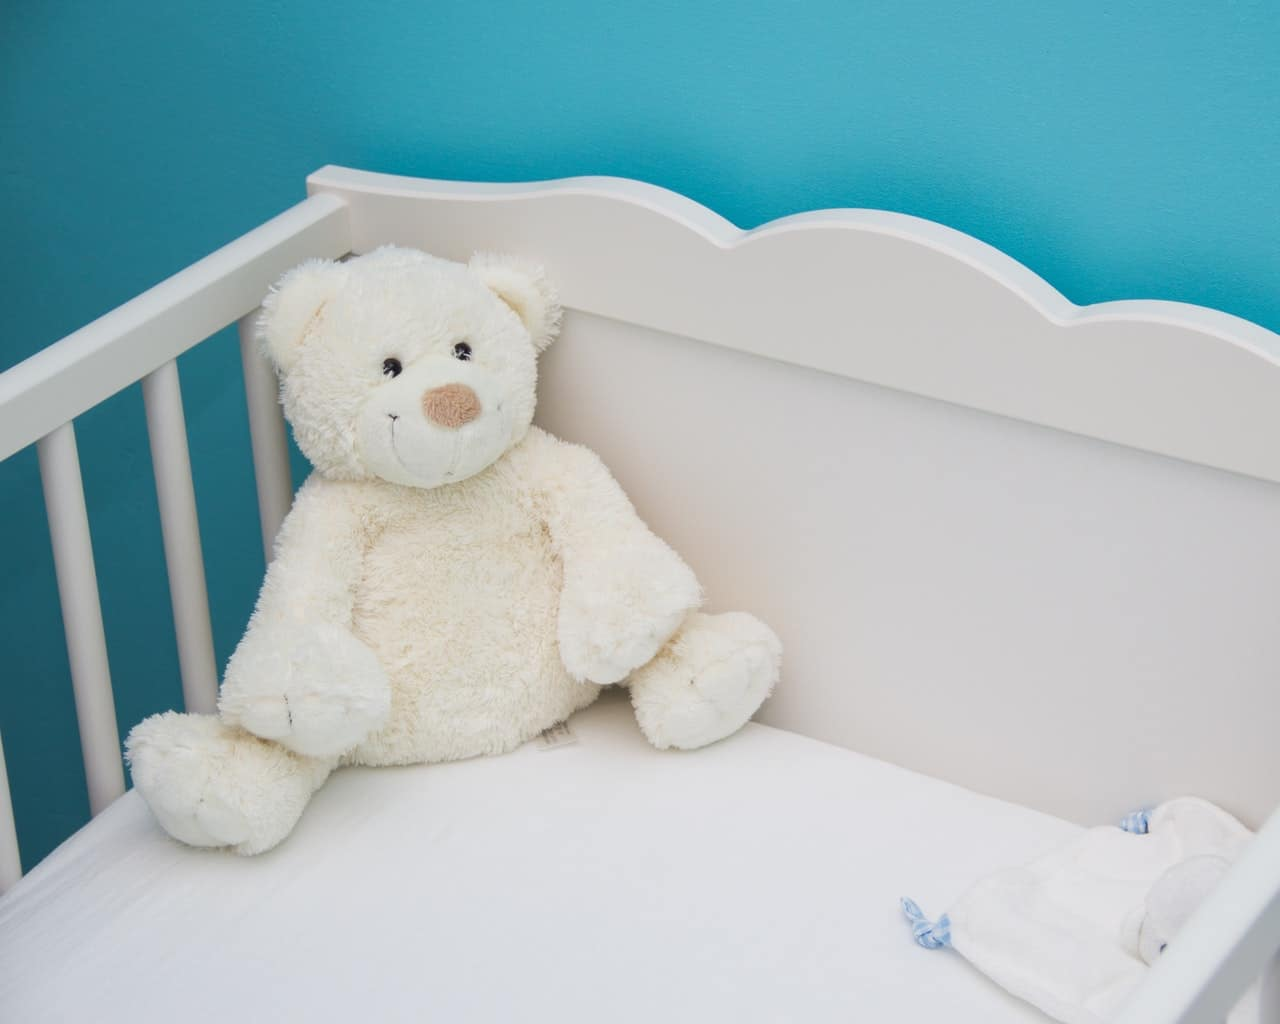 Sleeping Well Throughout Pregnancy